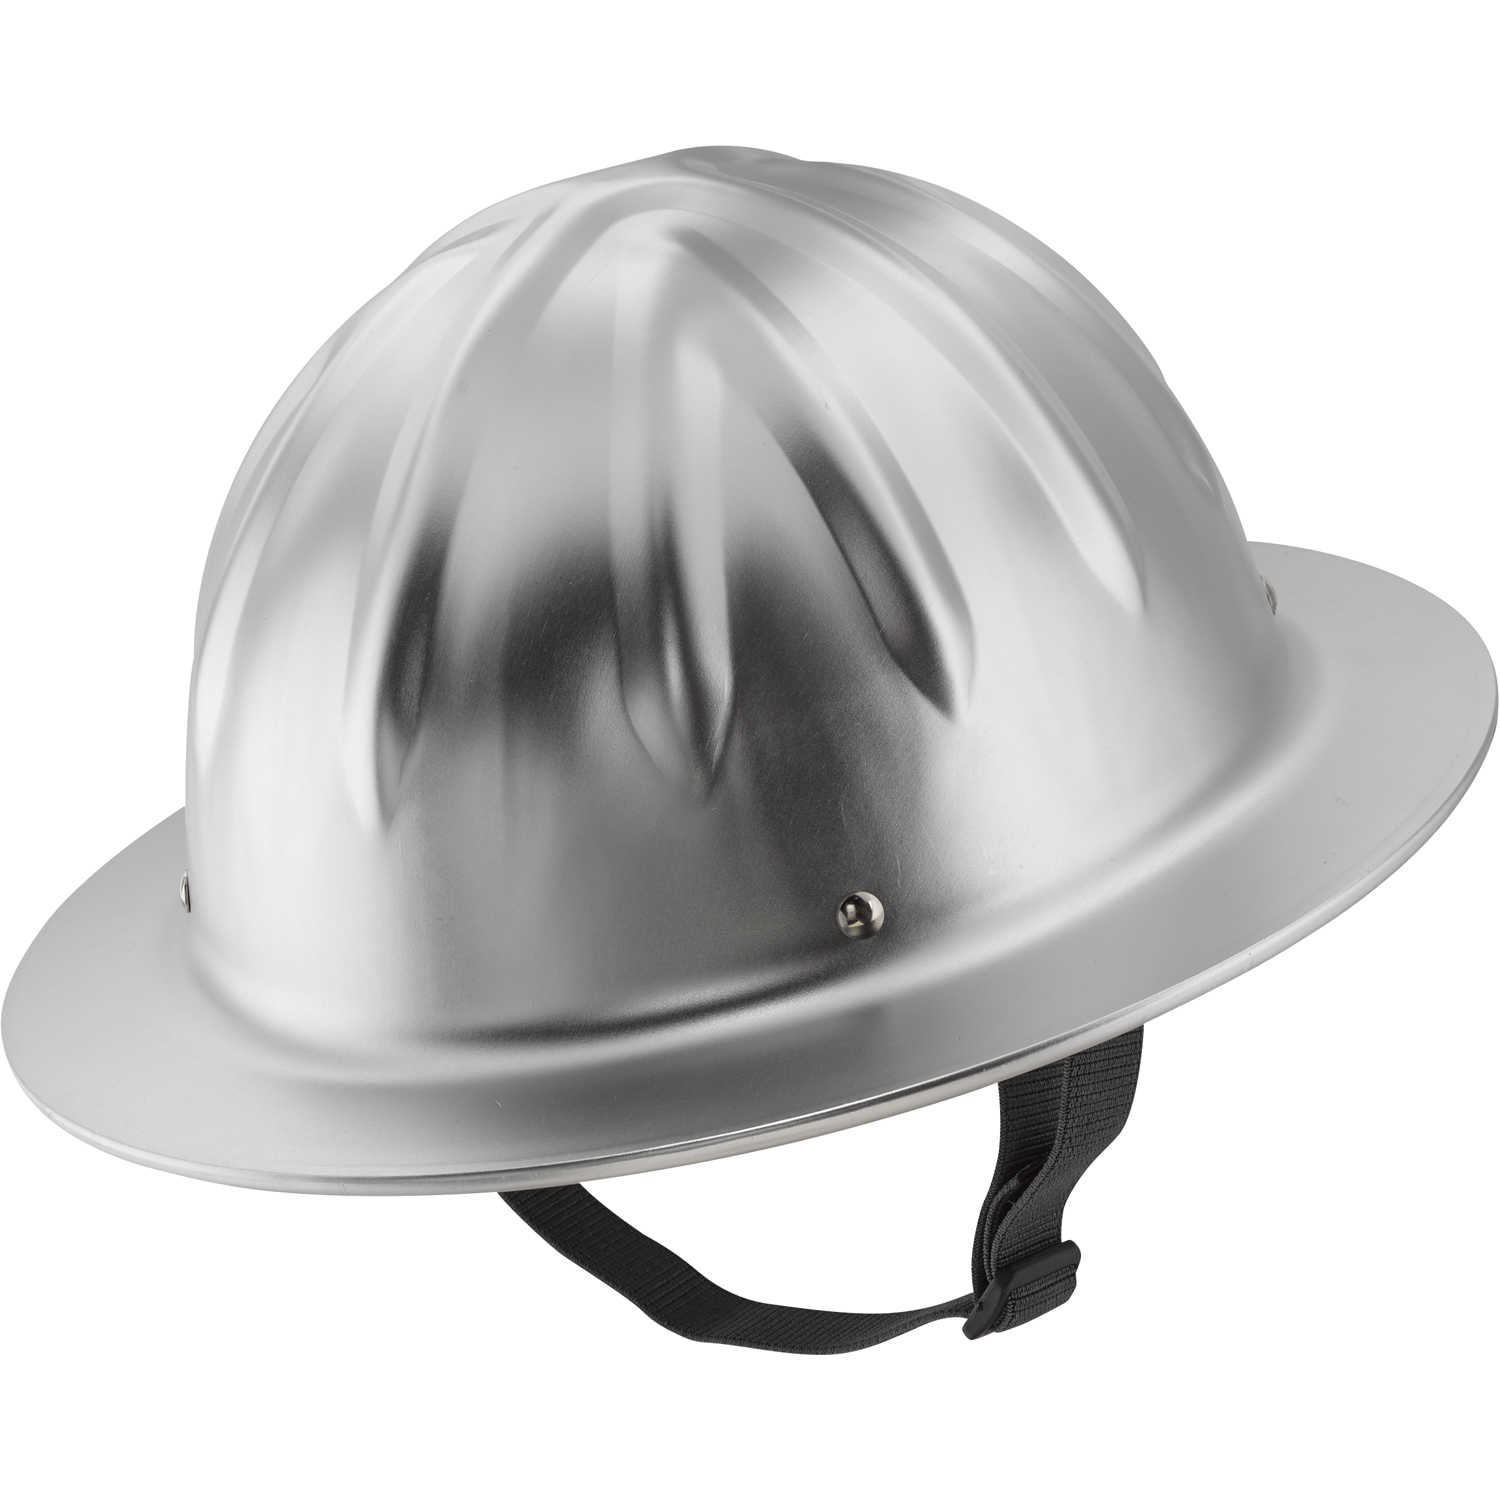 Steel Hard Hats - Latest and Best Hat Models